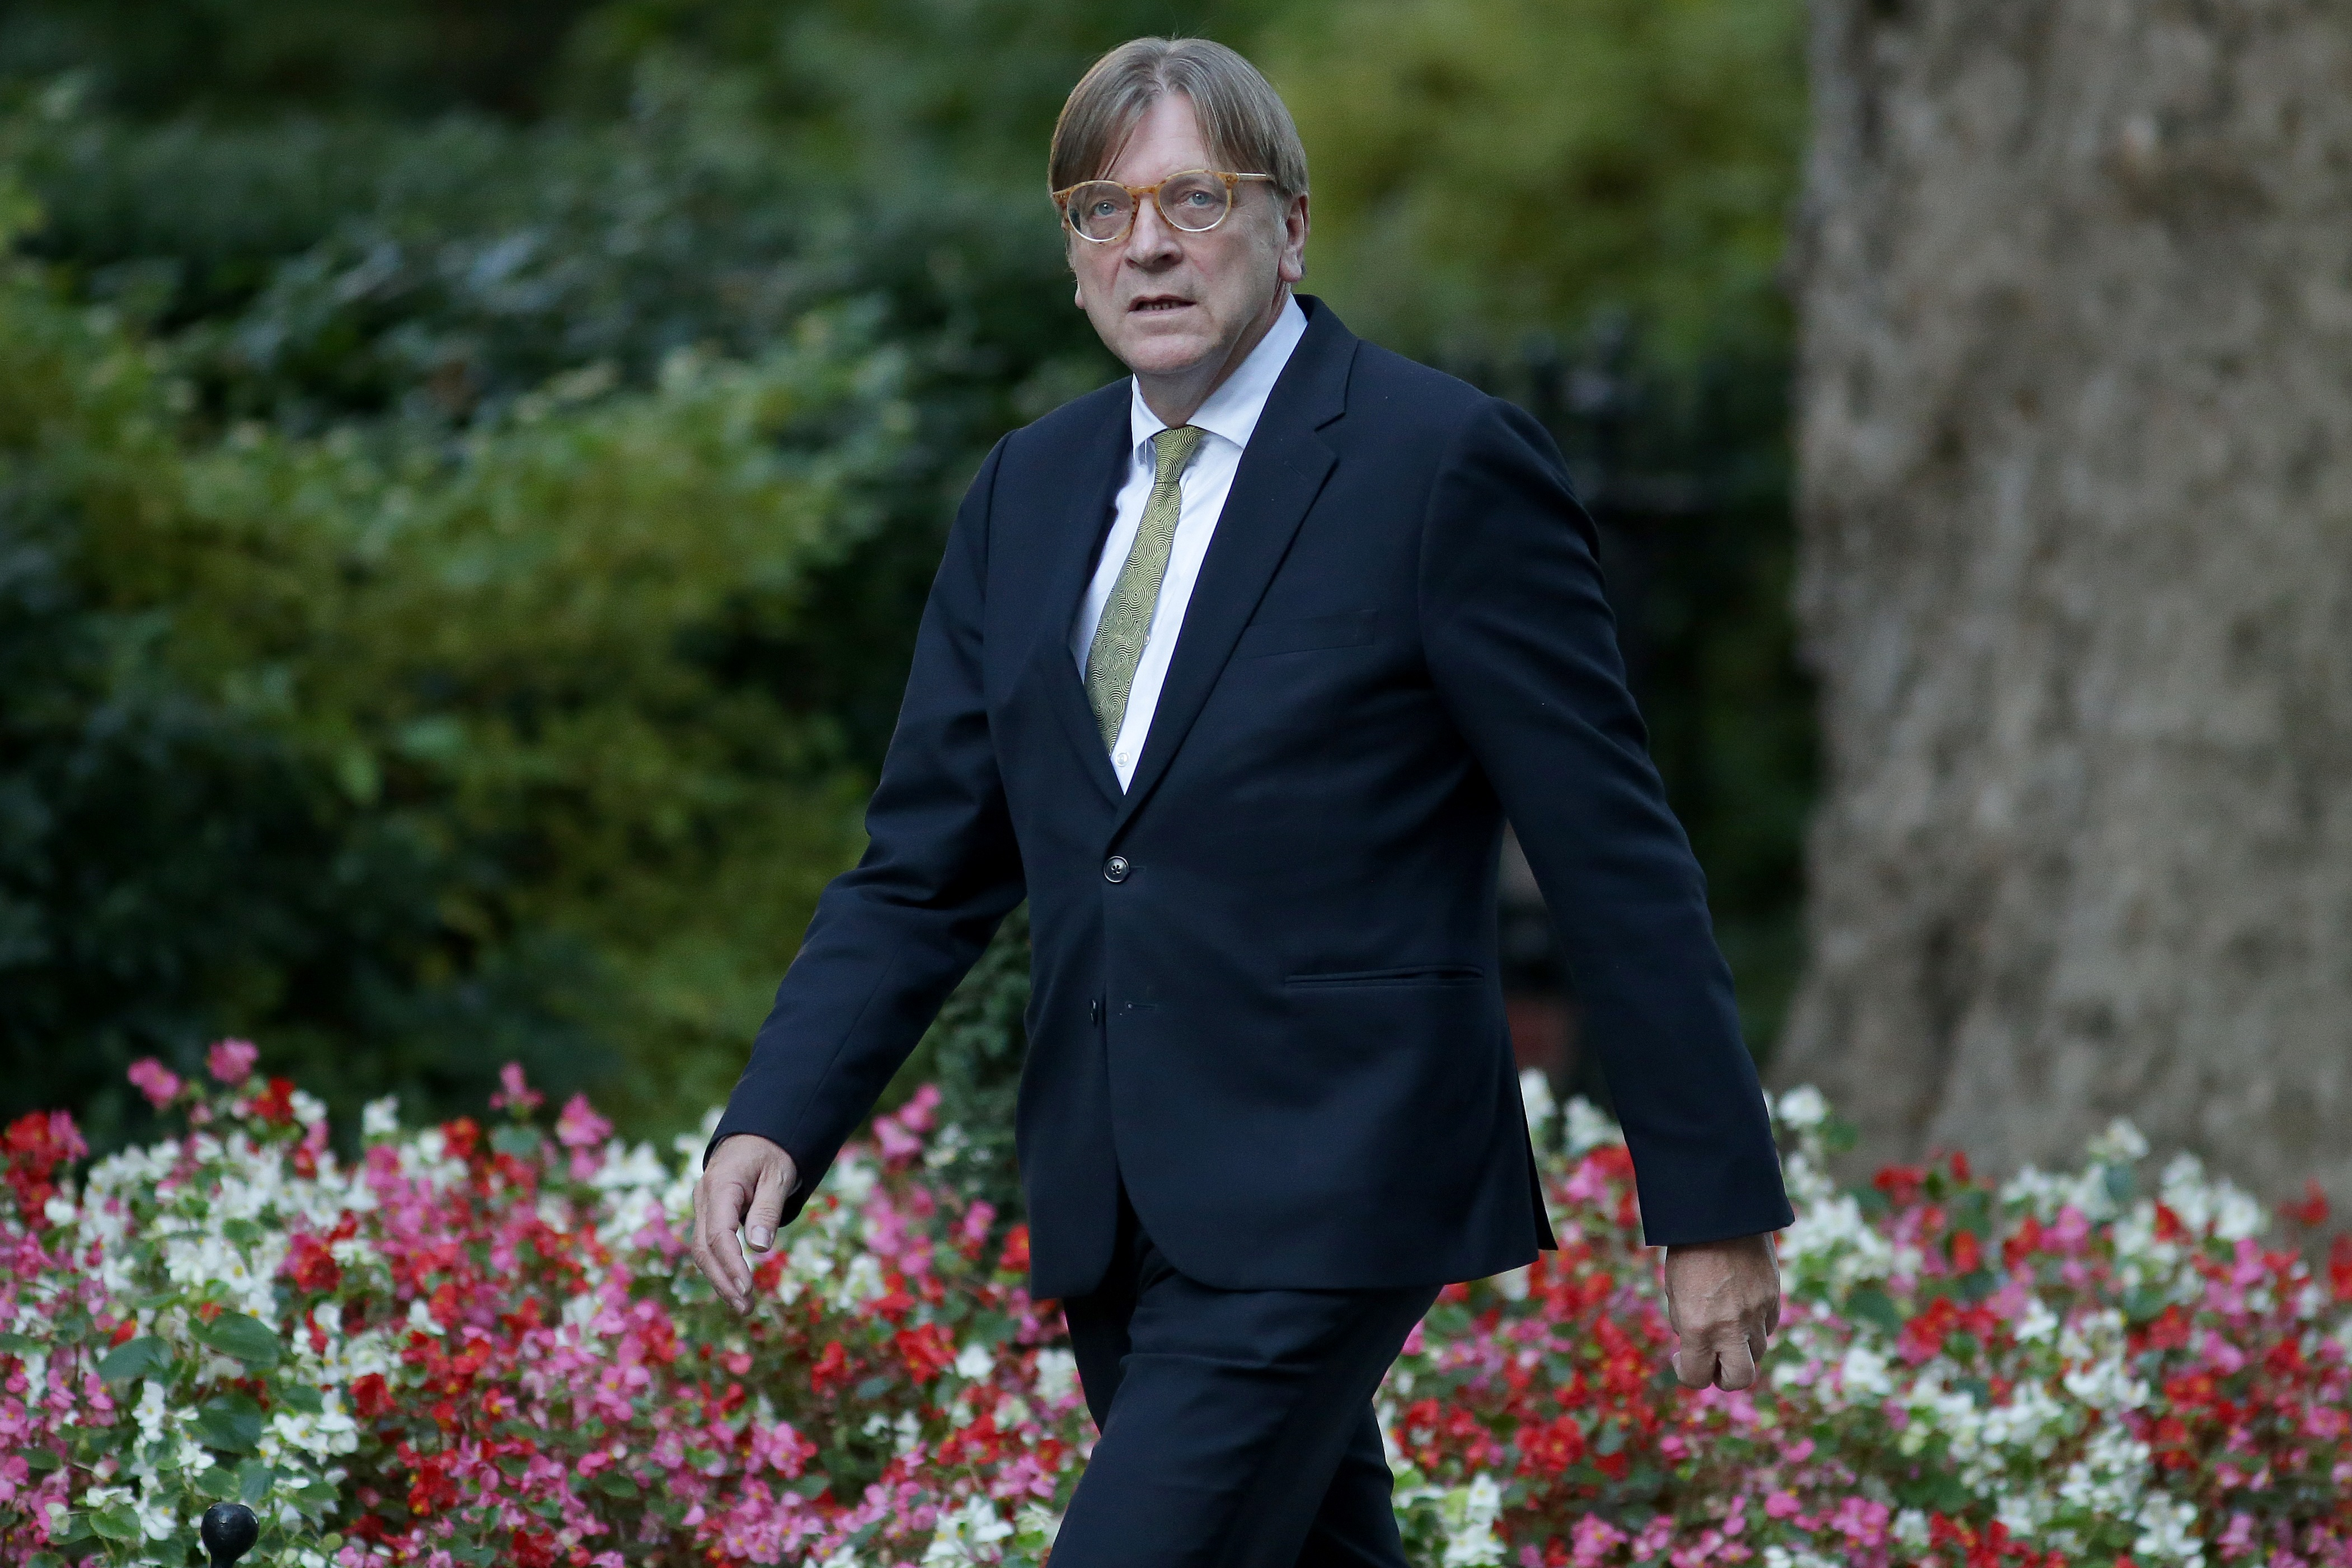 FILE PHOTO: The European Parliament's Brexit coordinator Guy Verhofstadt attends a meeting with Britain's Prime Minister Theresa May at Downing Street last September.